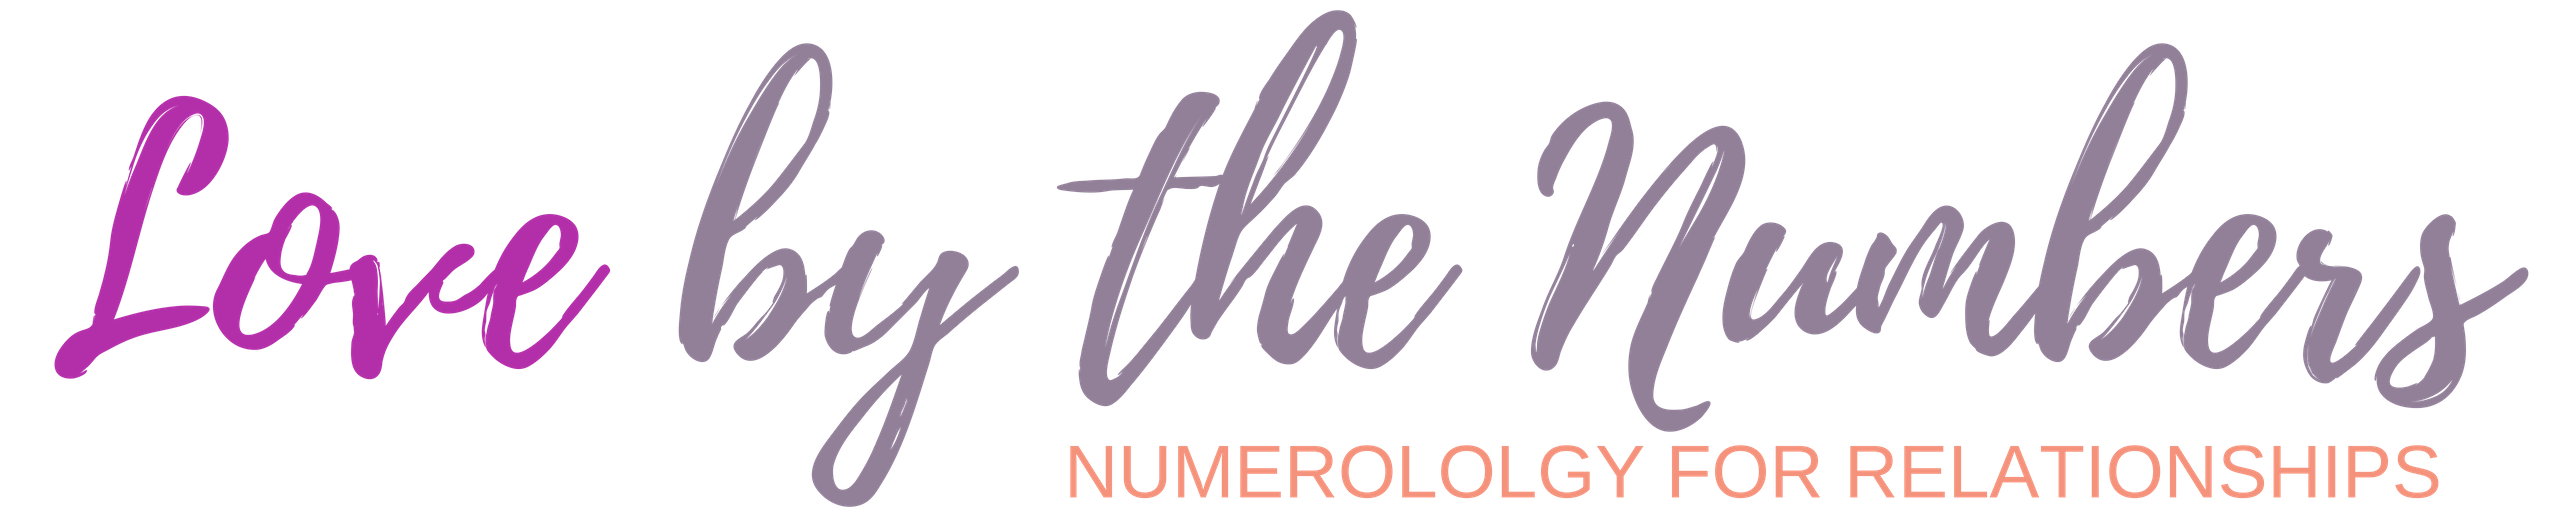 Love by the Numbers - Numerology for Relationships